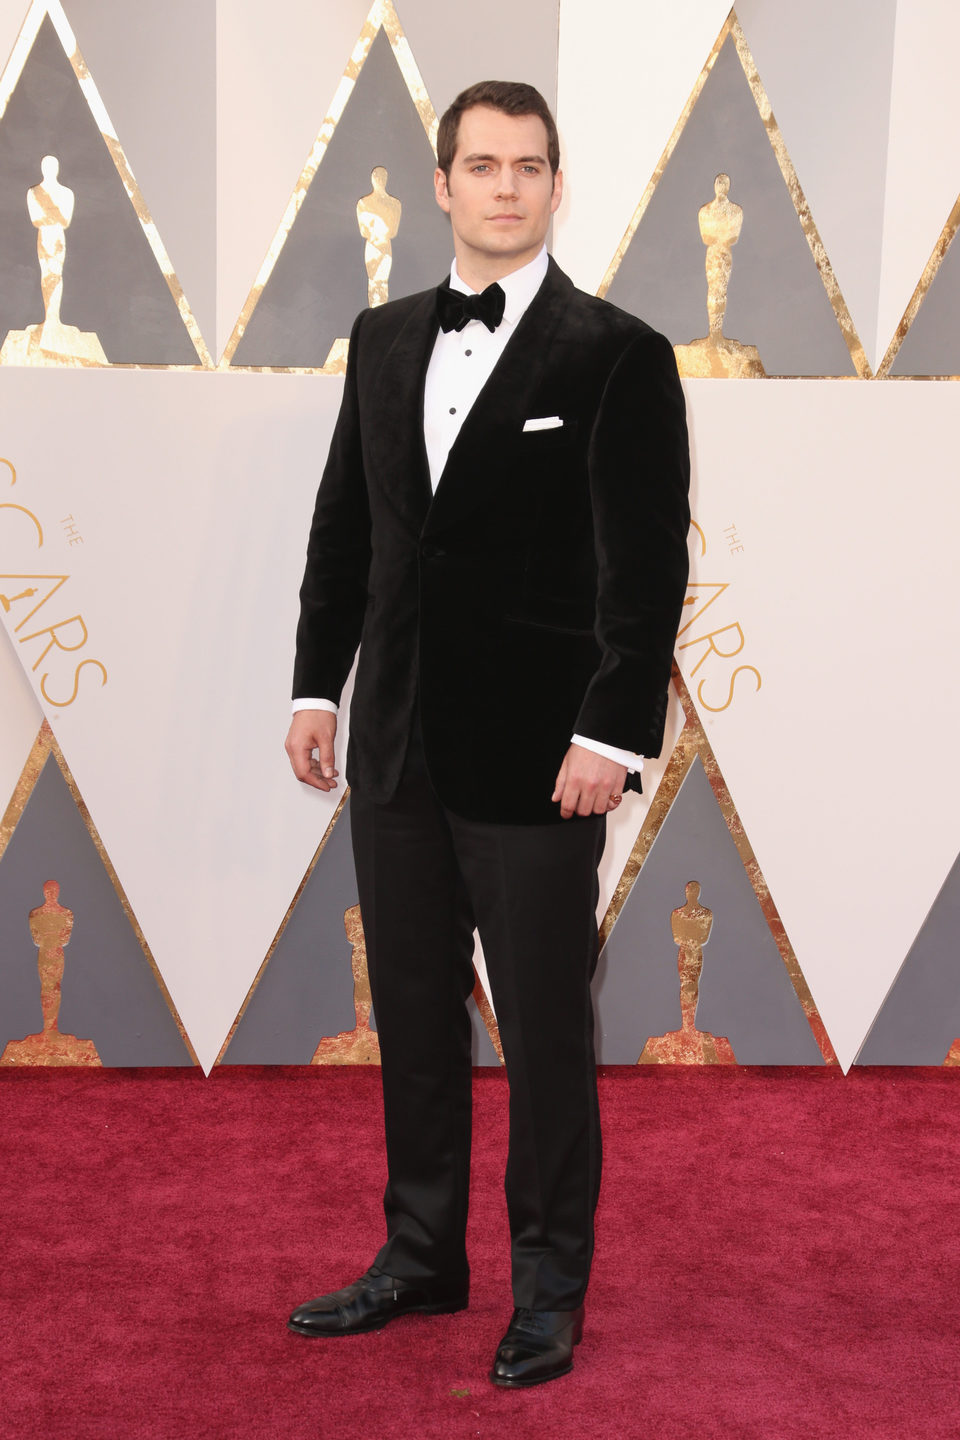 Henry Cavill at the Oscars 2016 red carpet